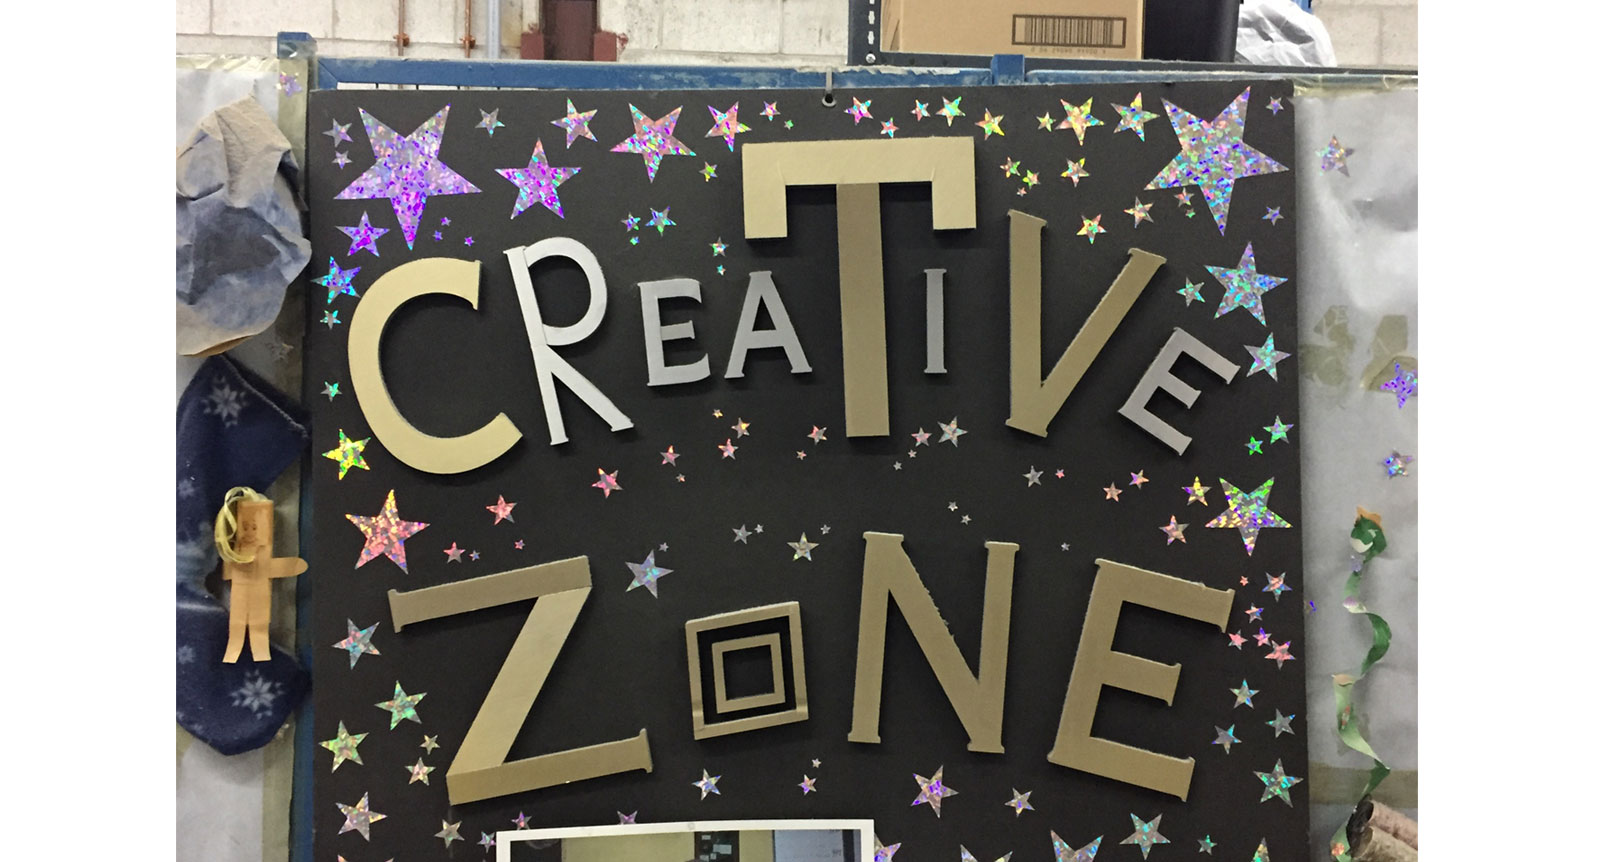 The Creative Zone: What Better Way to Reduce, Reuse and Recycle?